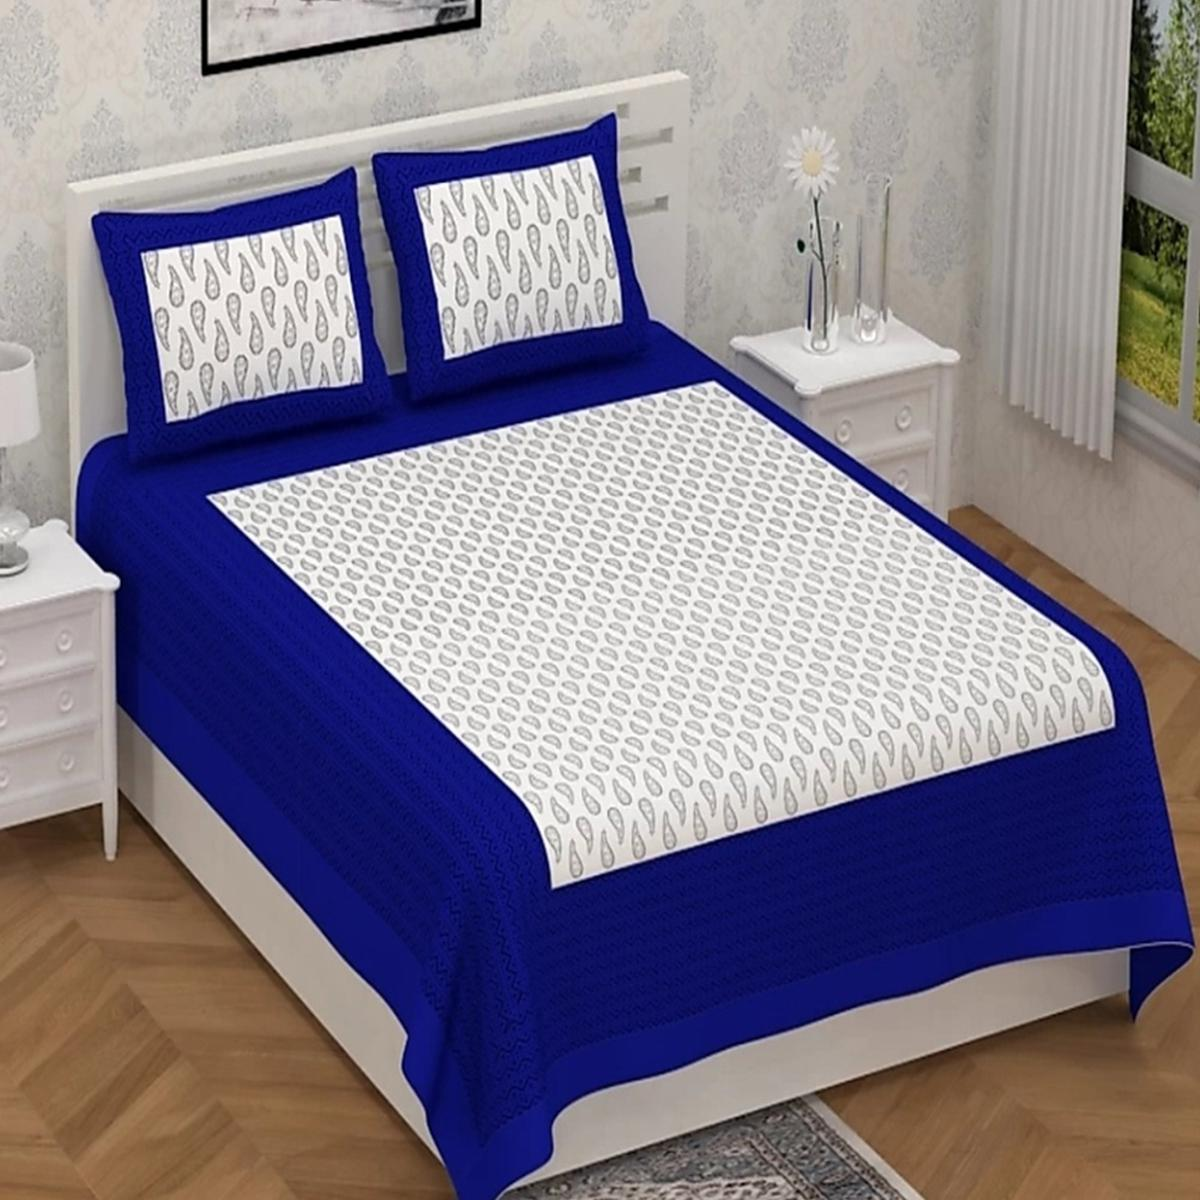 Trendy Blue-White Colored Printed Cotton Double Bedsheet with 2 Pillow Cover